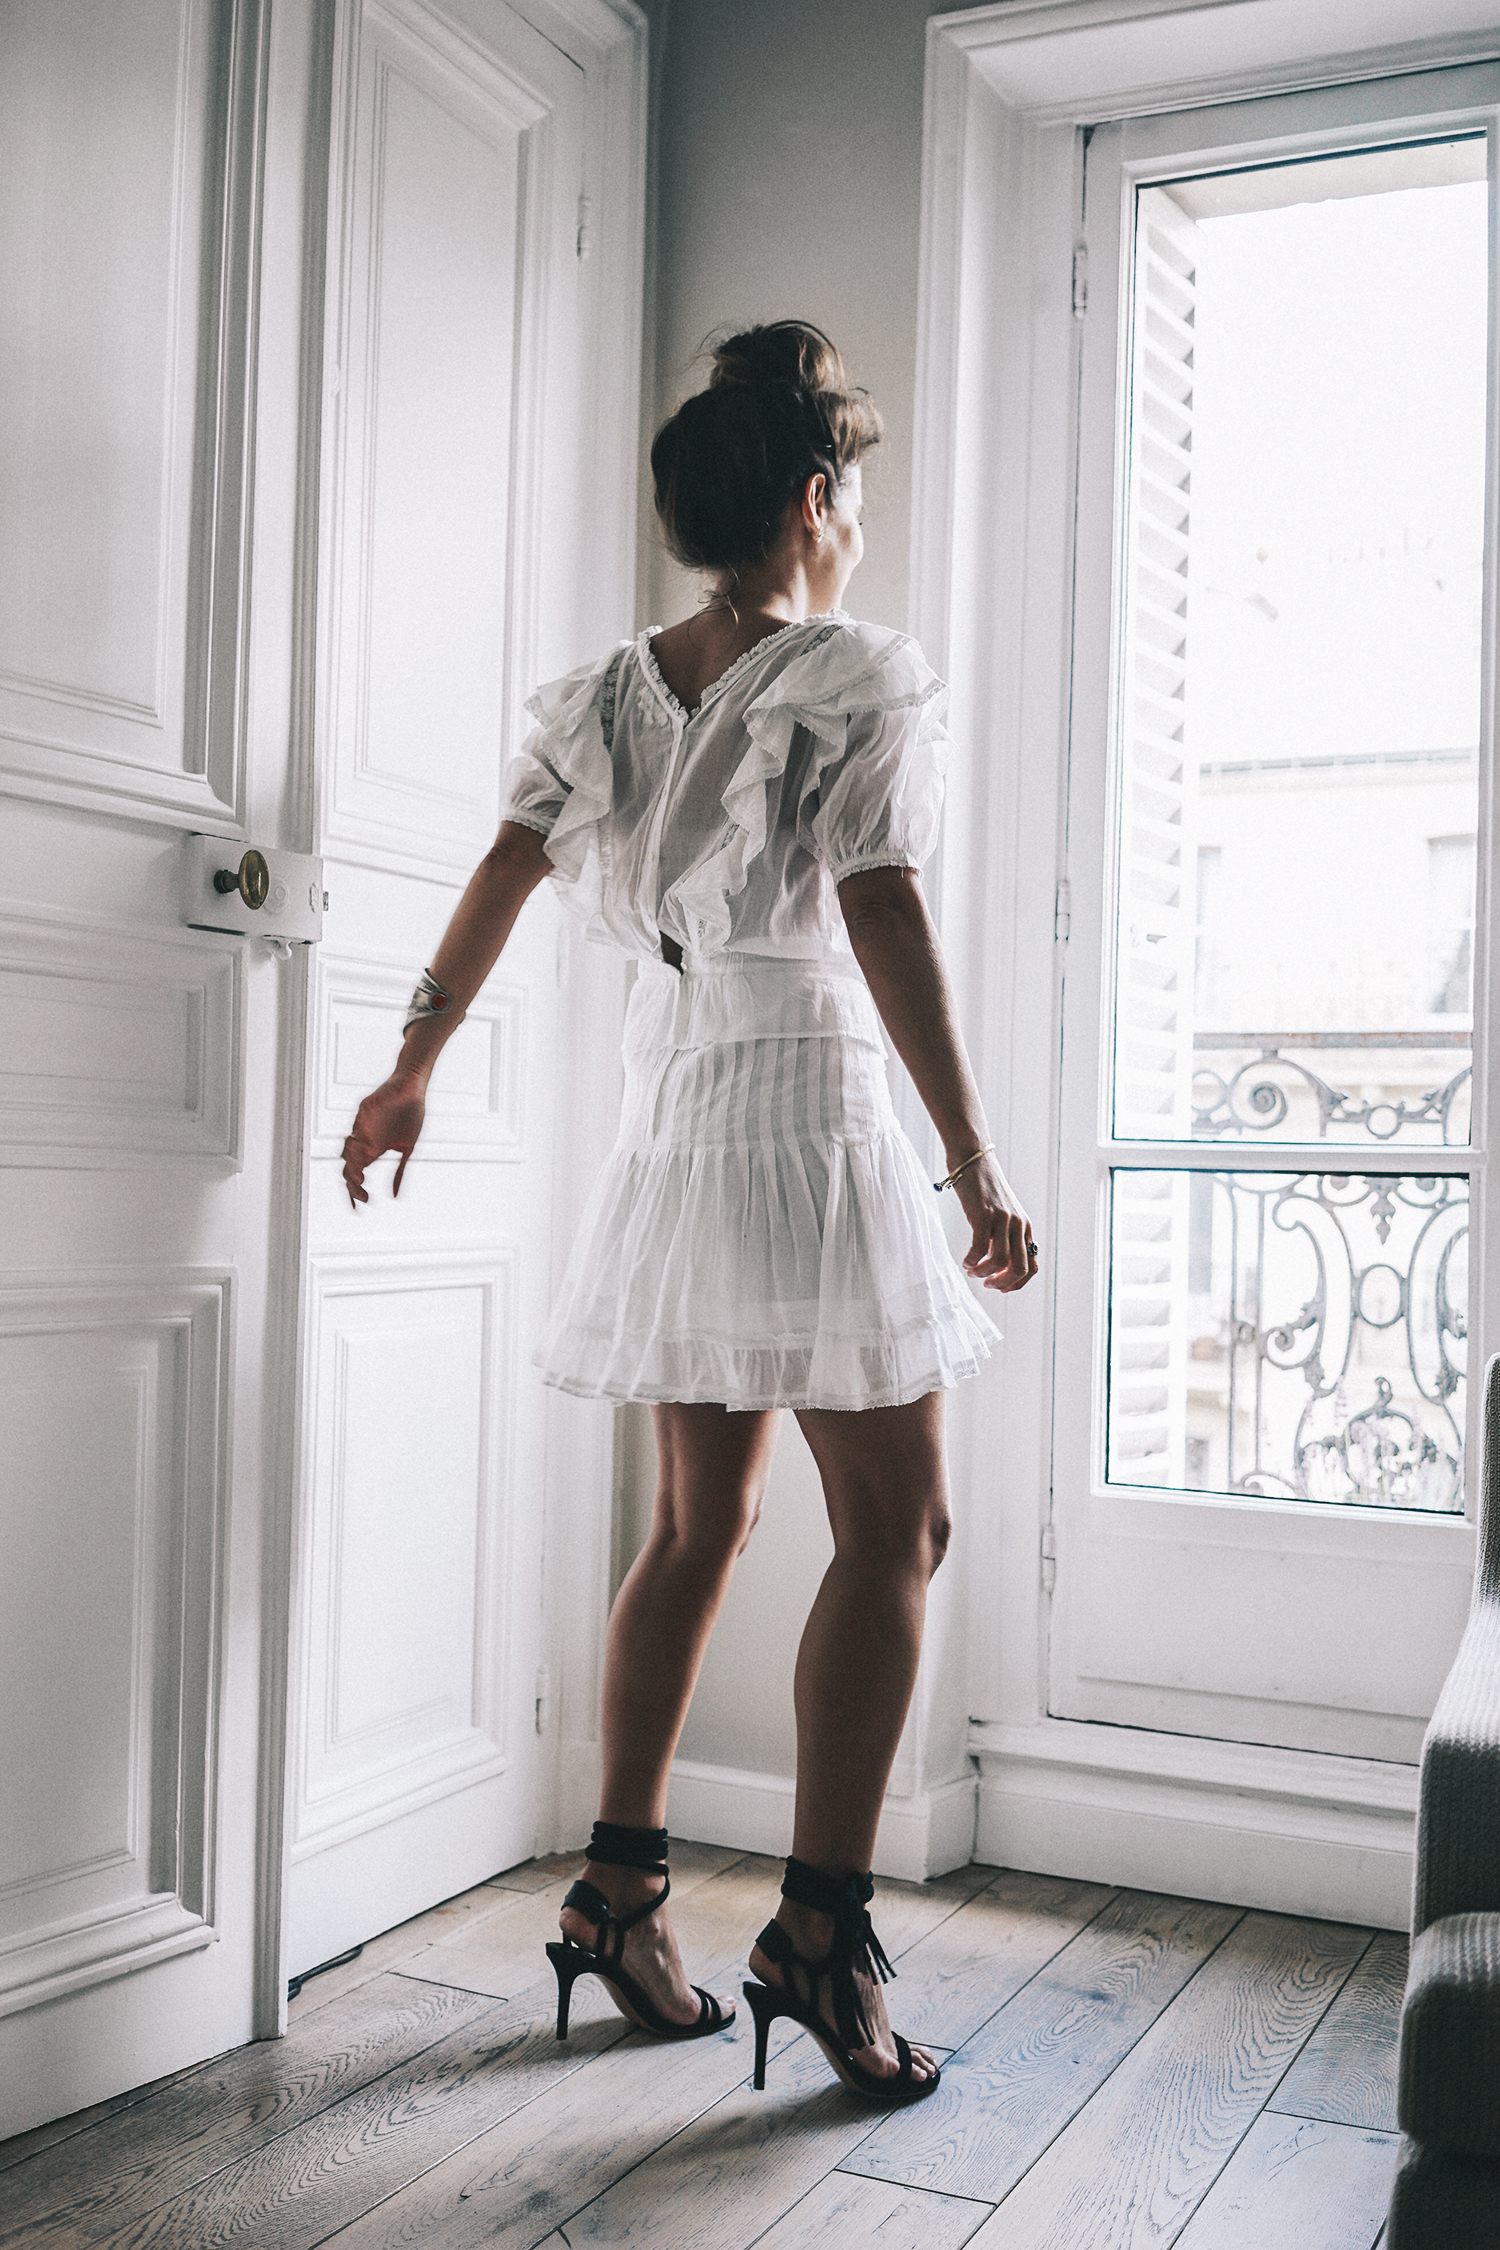 Home_Away-Isabel_Marant_Dress-Outfit-Paris-Collage_Vintage-43